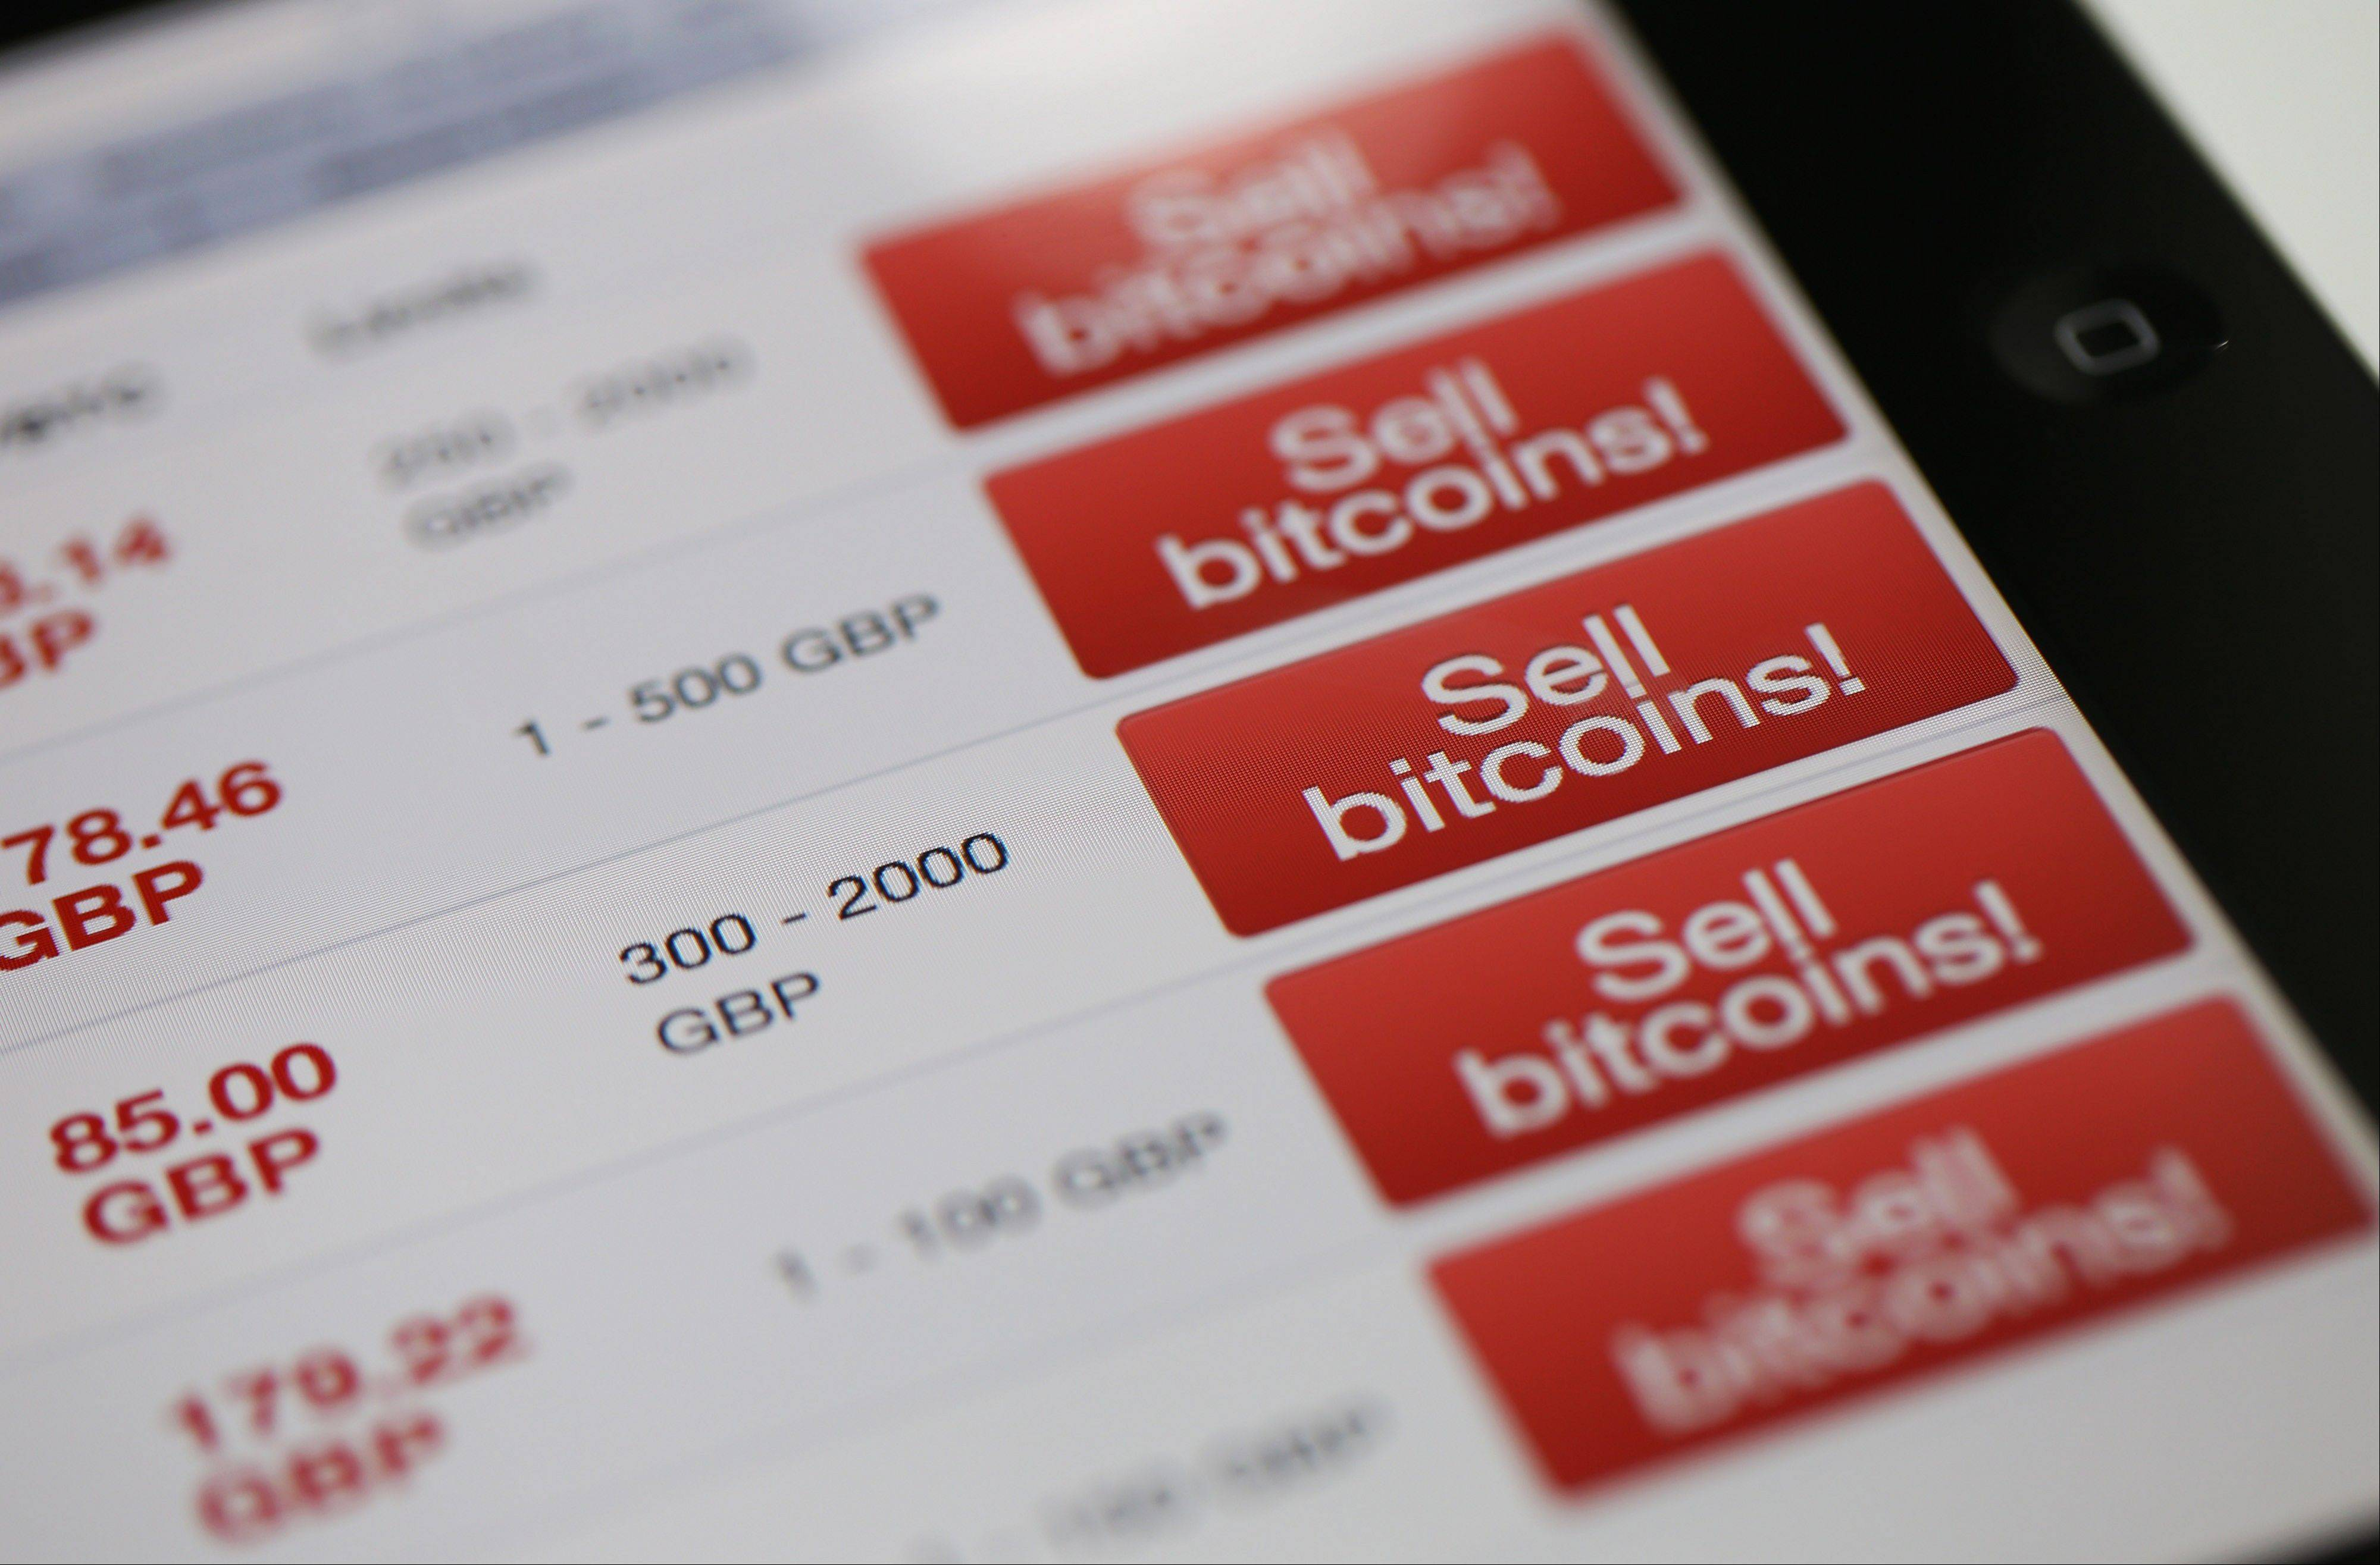 A computer screen displays Bitcoin currency exchange rates for the British pound on an internet website in London, U.K., on Wednesday, April 10, 2013.